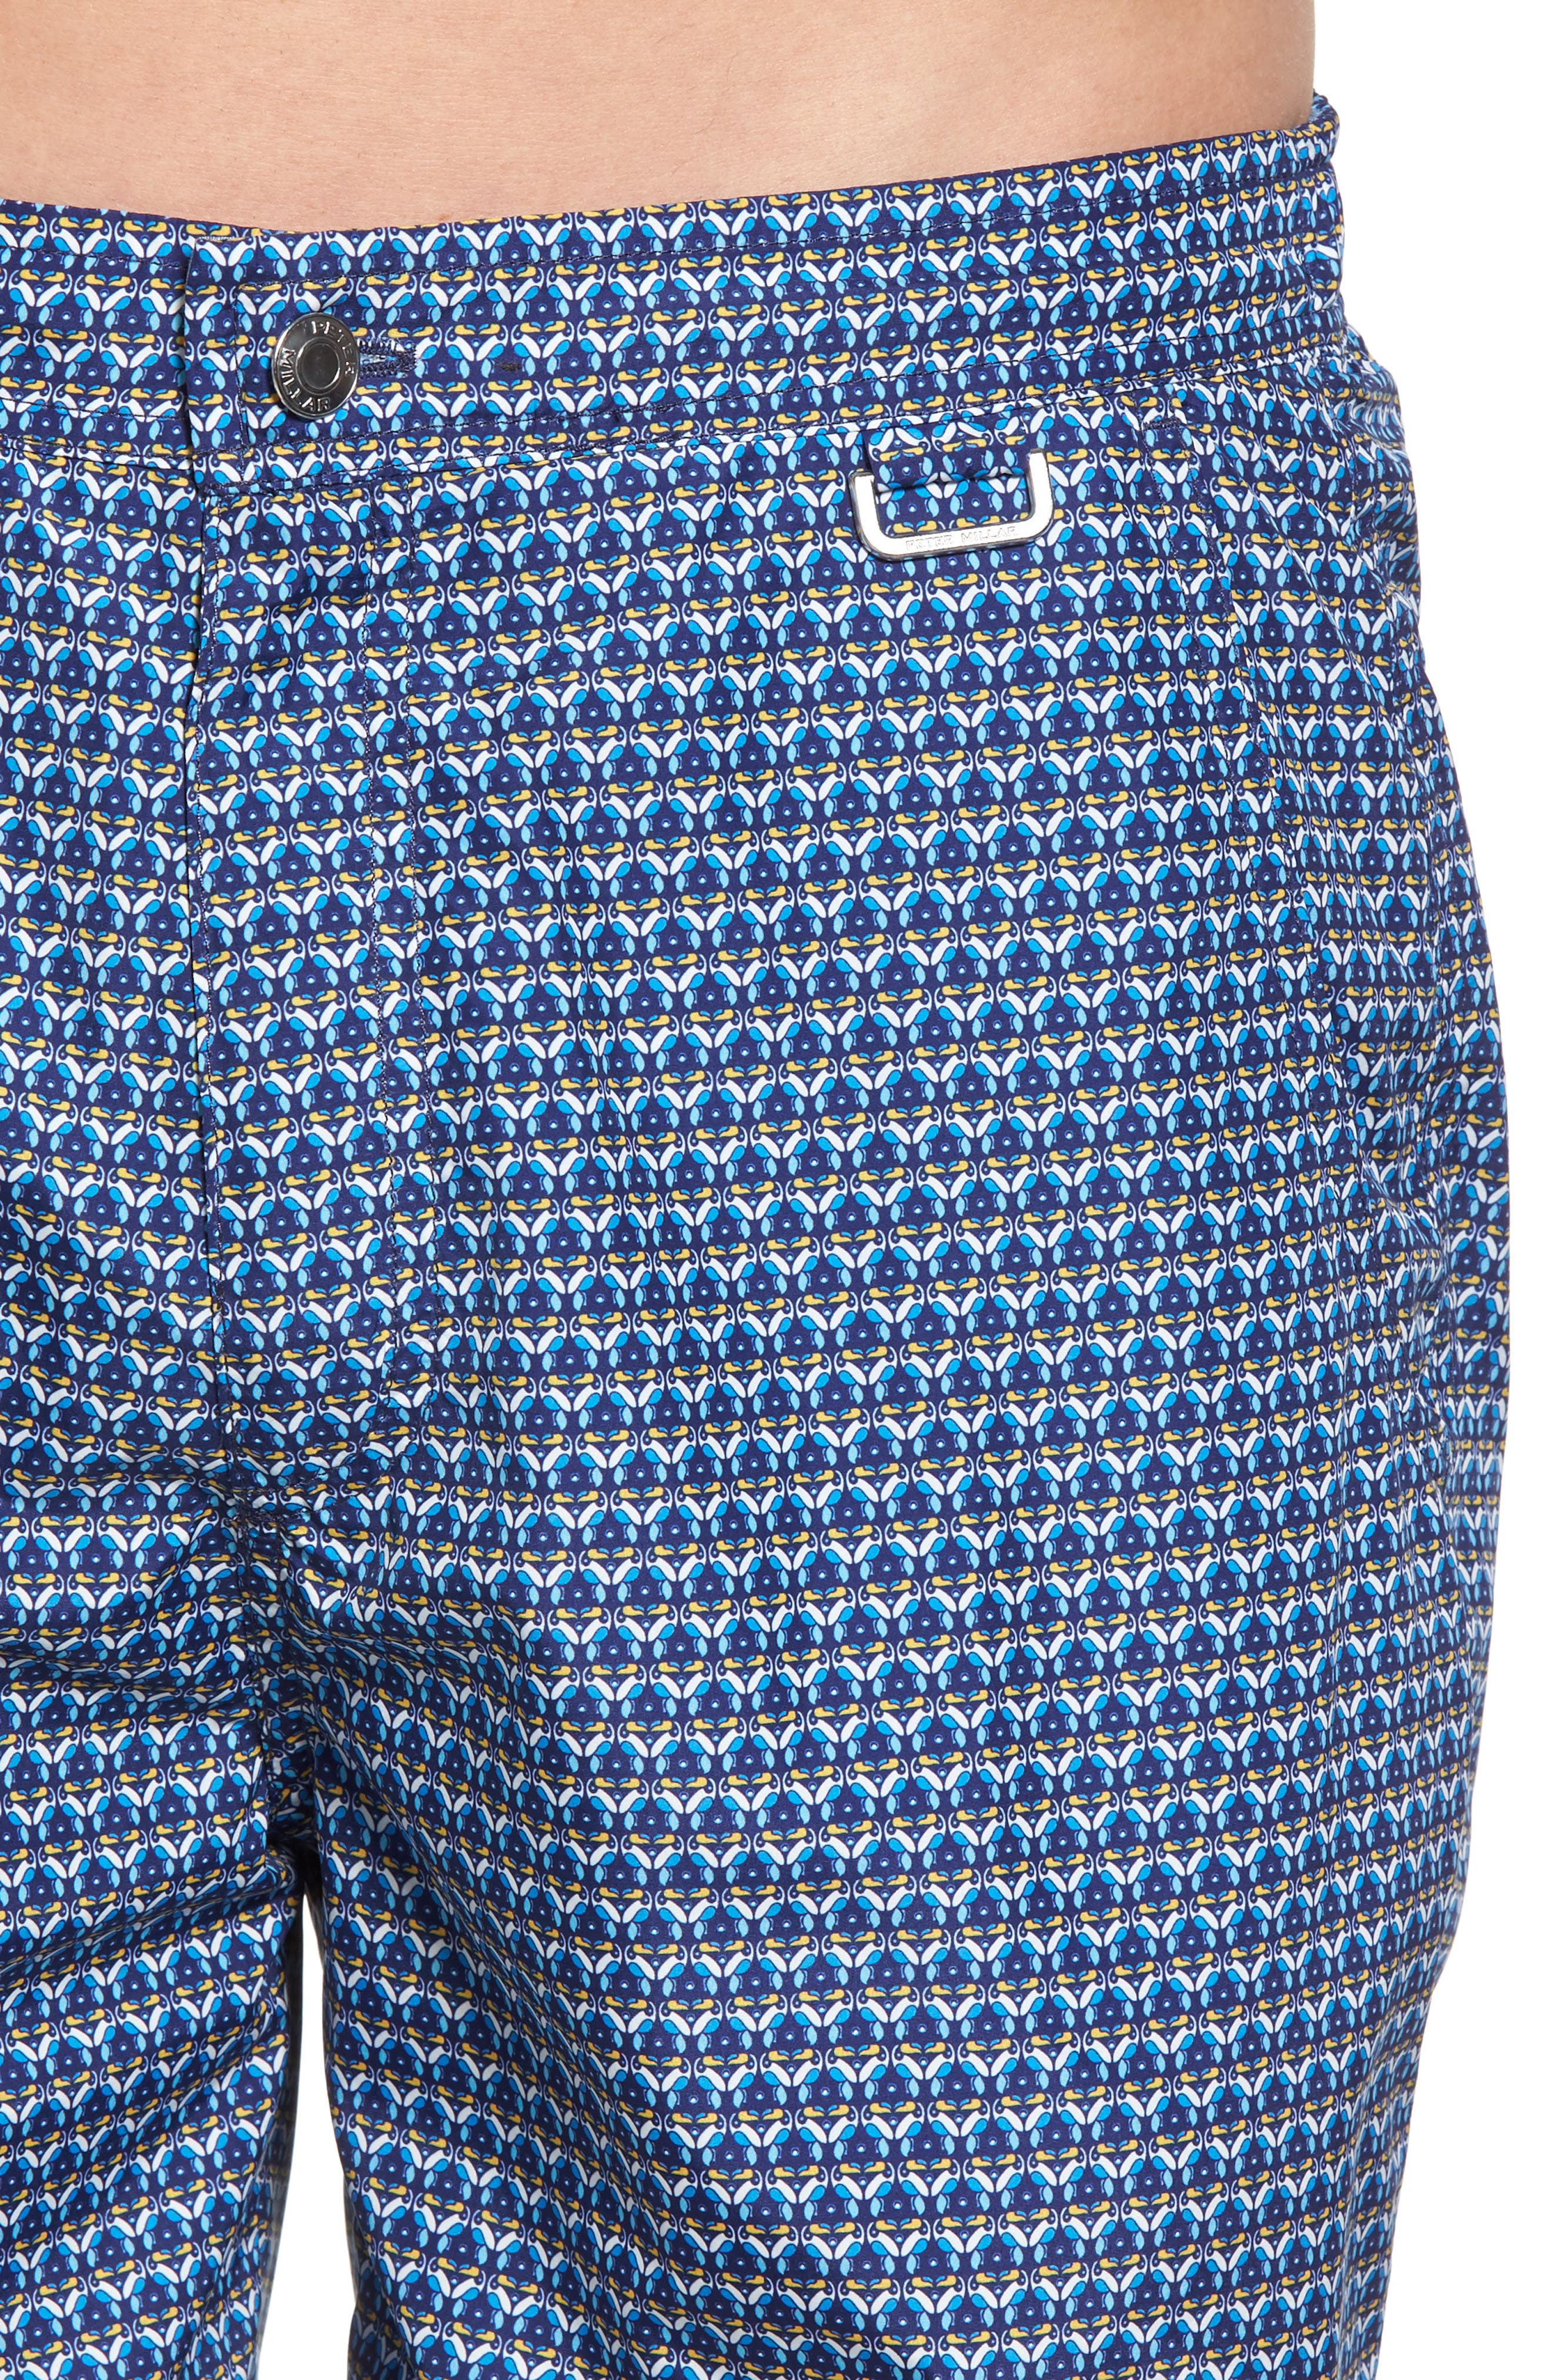 Peter Millar Two Can Too Swim Trunks,                             Alternate thumbnail 4, color,                             440